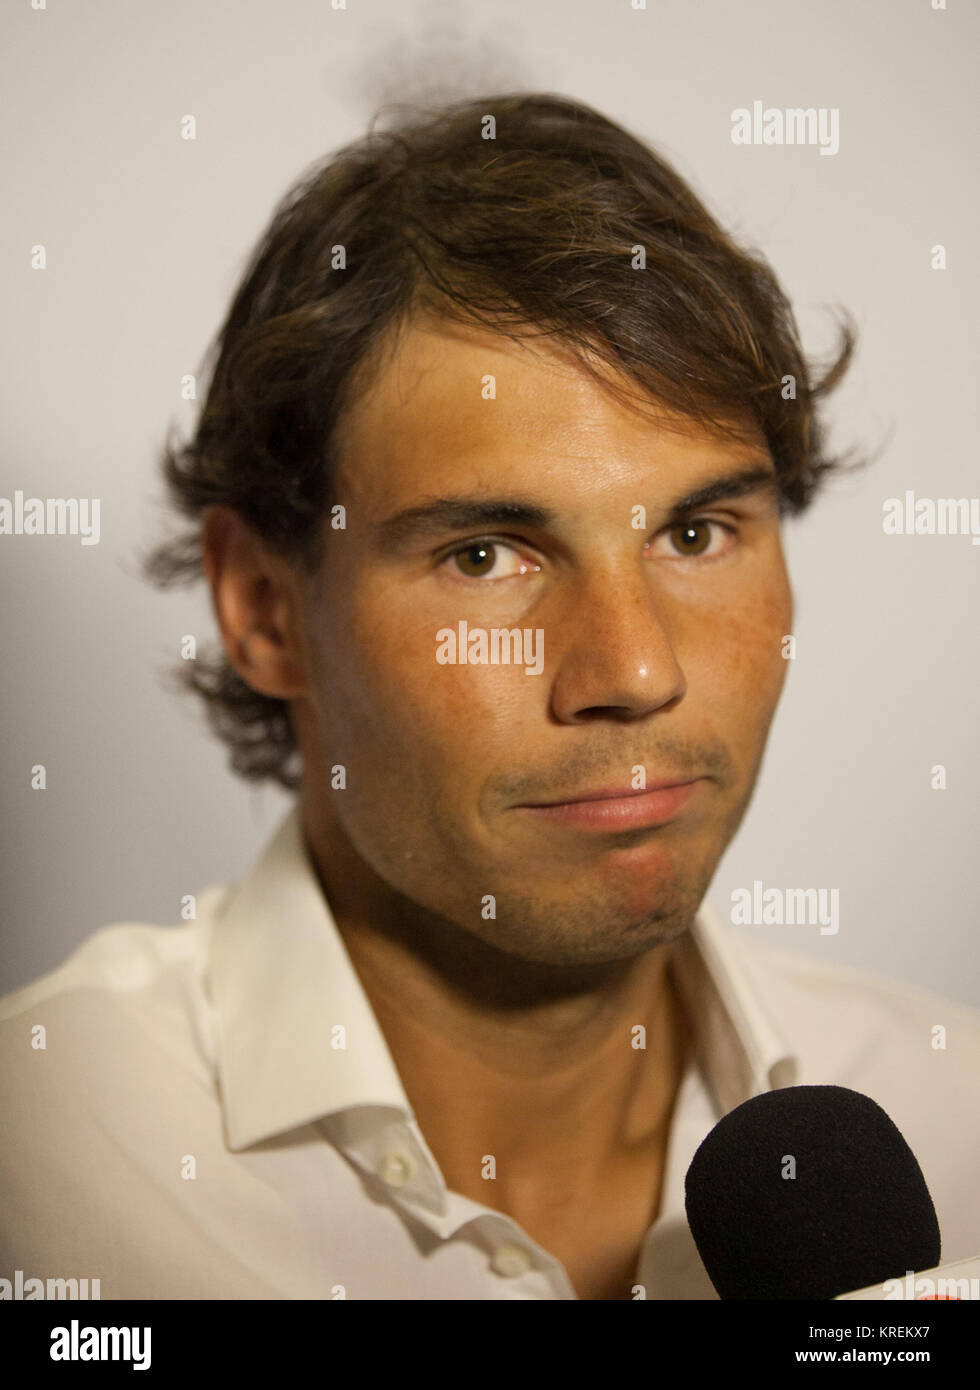 MELBOURNE, AUSTRALIA - JANUARY 18: Rafael Nadal of Spain arrives for Crown's IMG@23 Tennis Players' Party at Crown Stock Photo